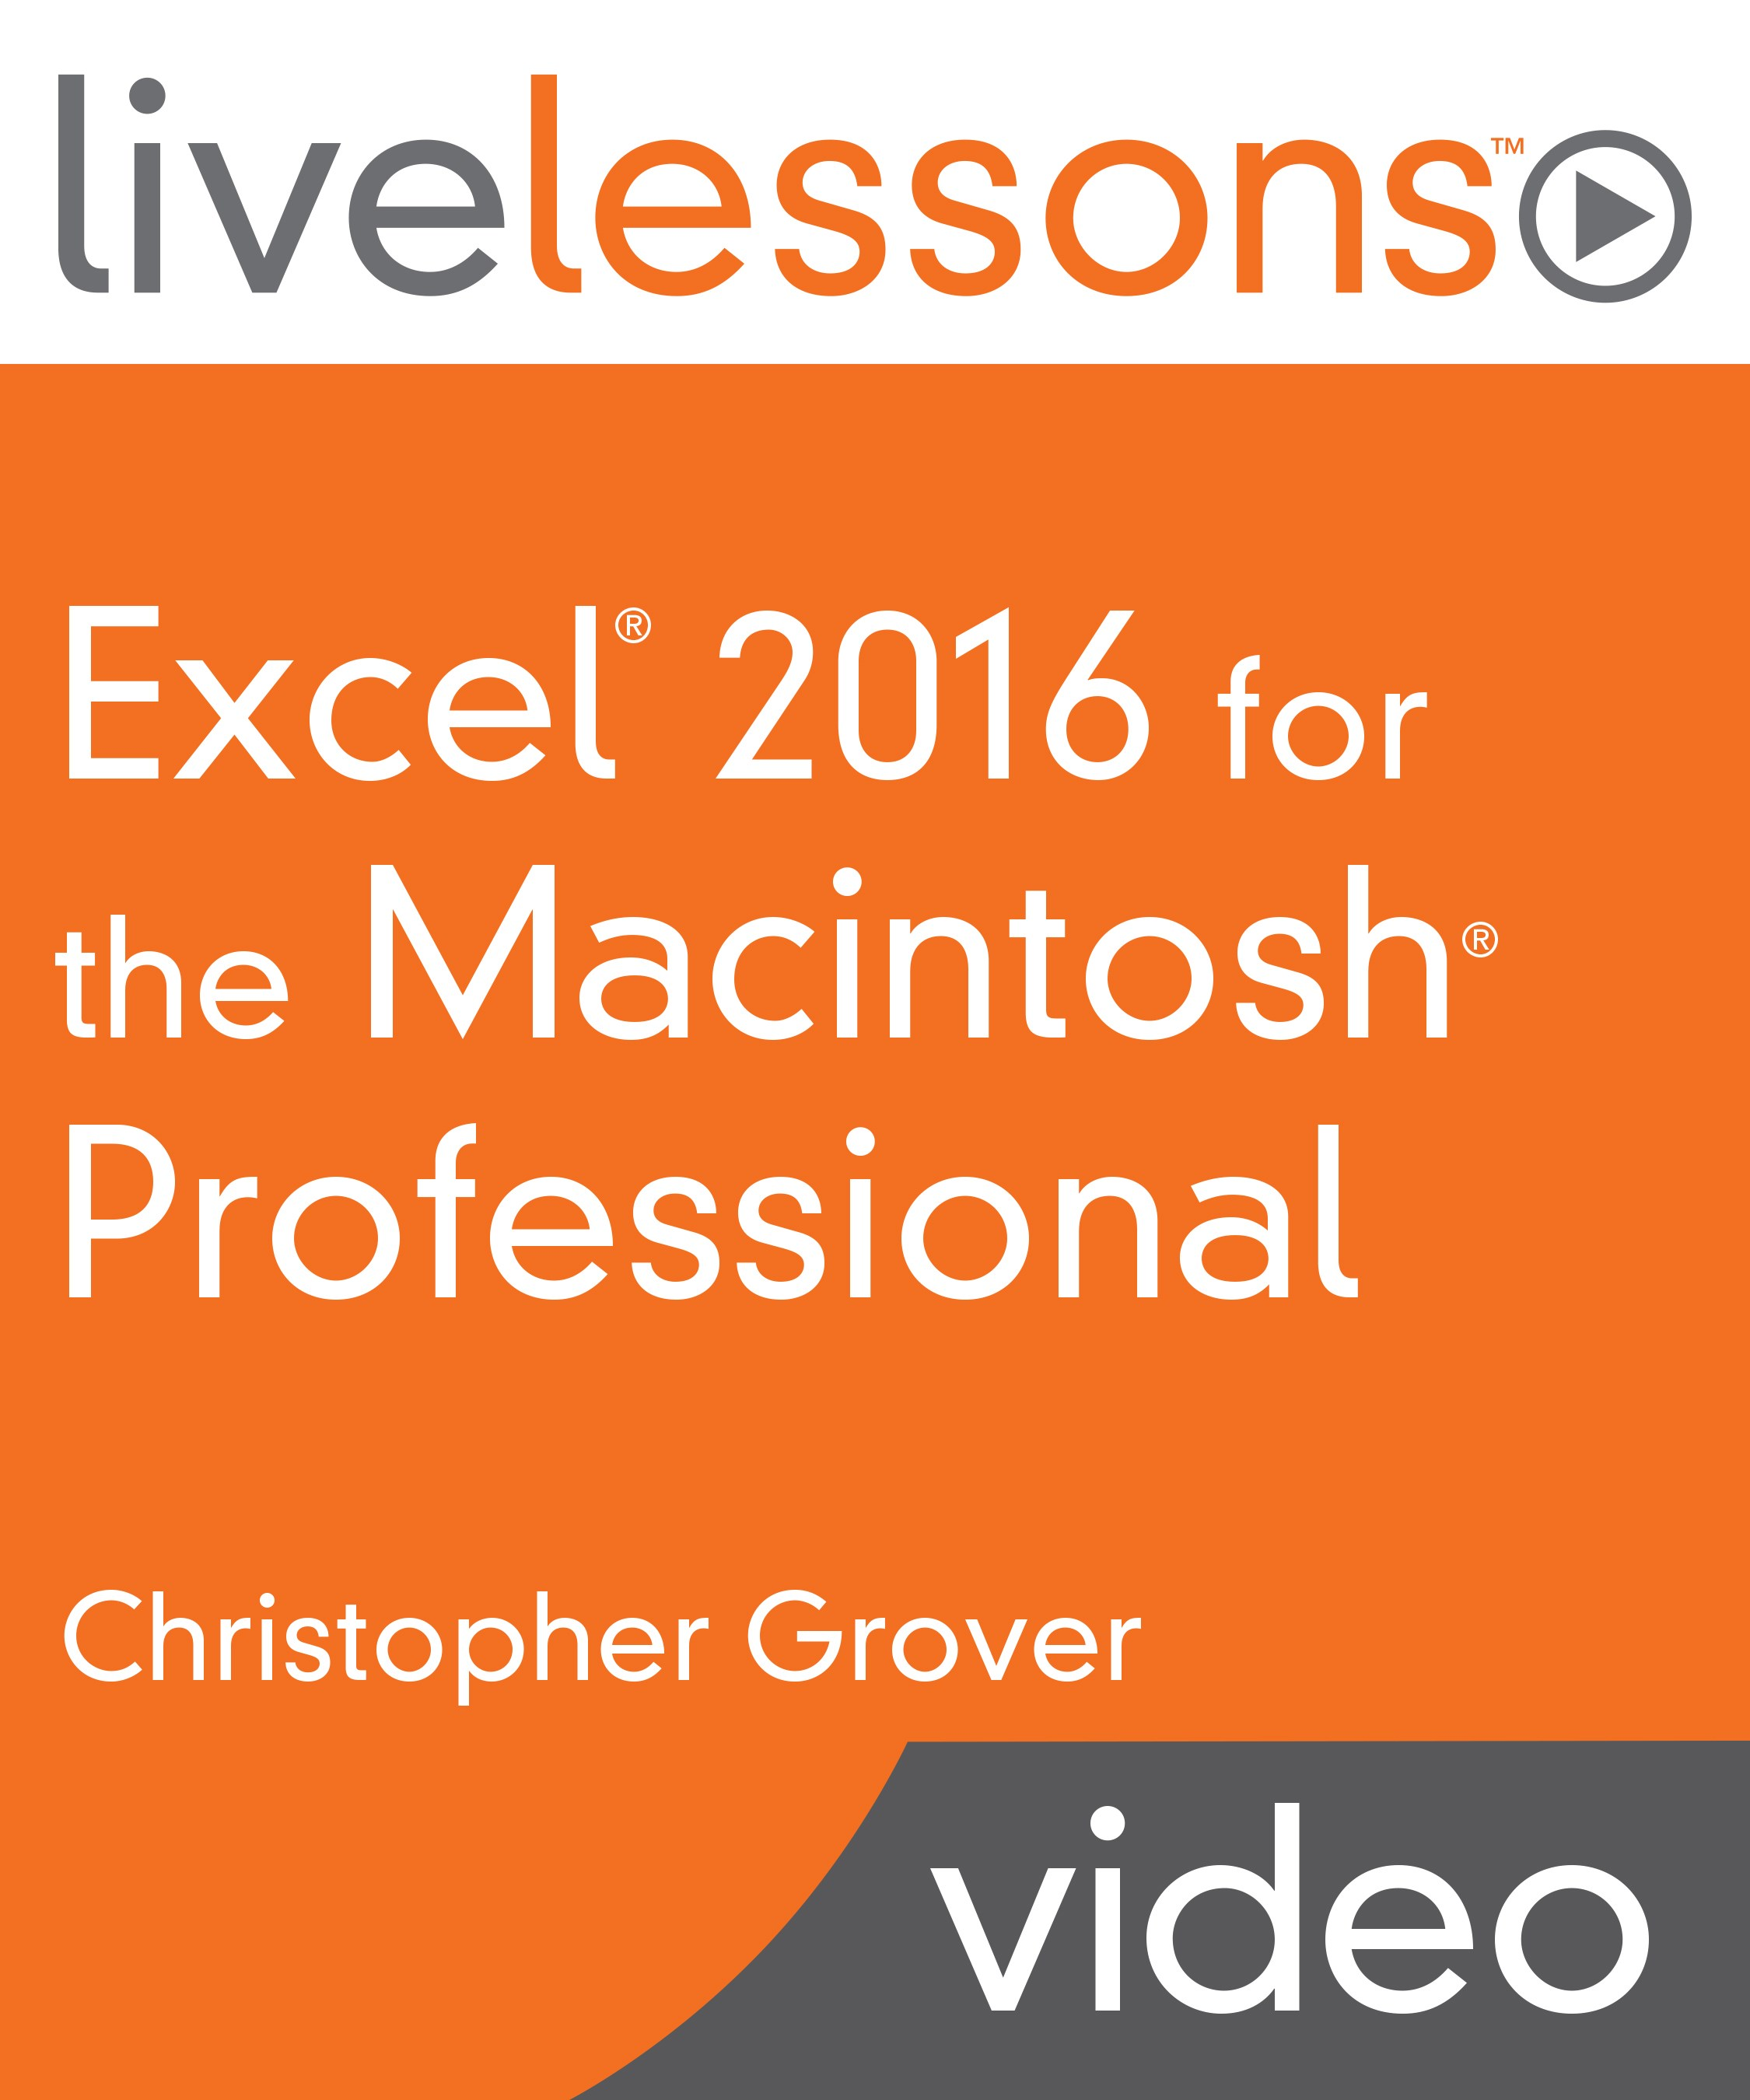 Excel 2016 for the Macintosh Professional LiveLessons (Video Training)